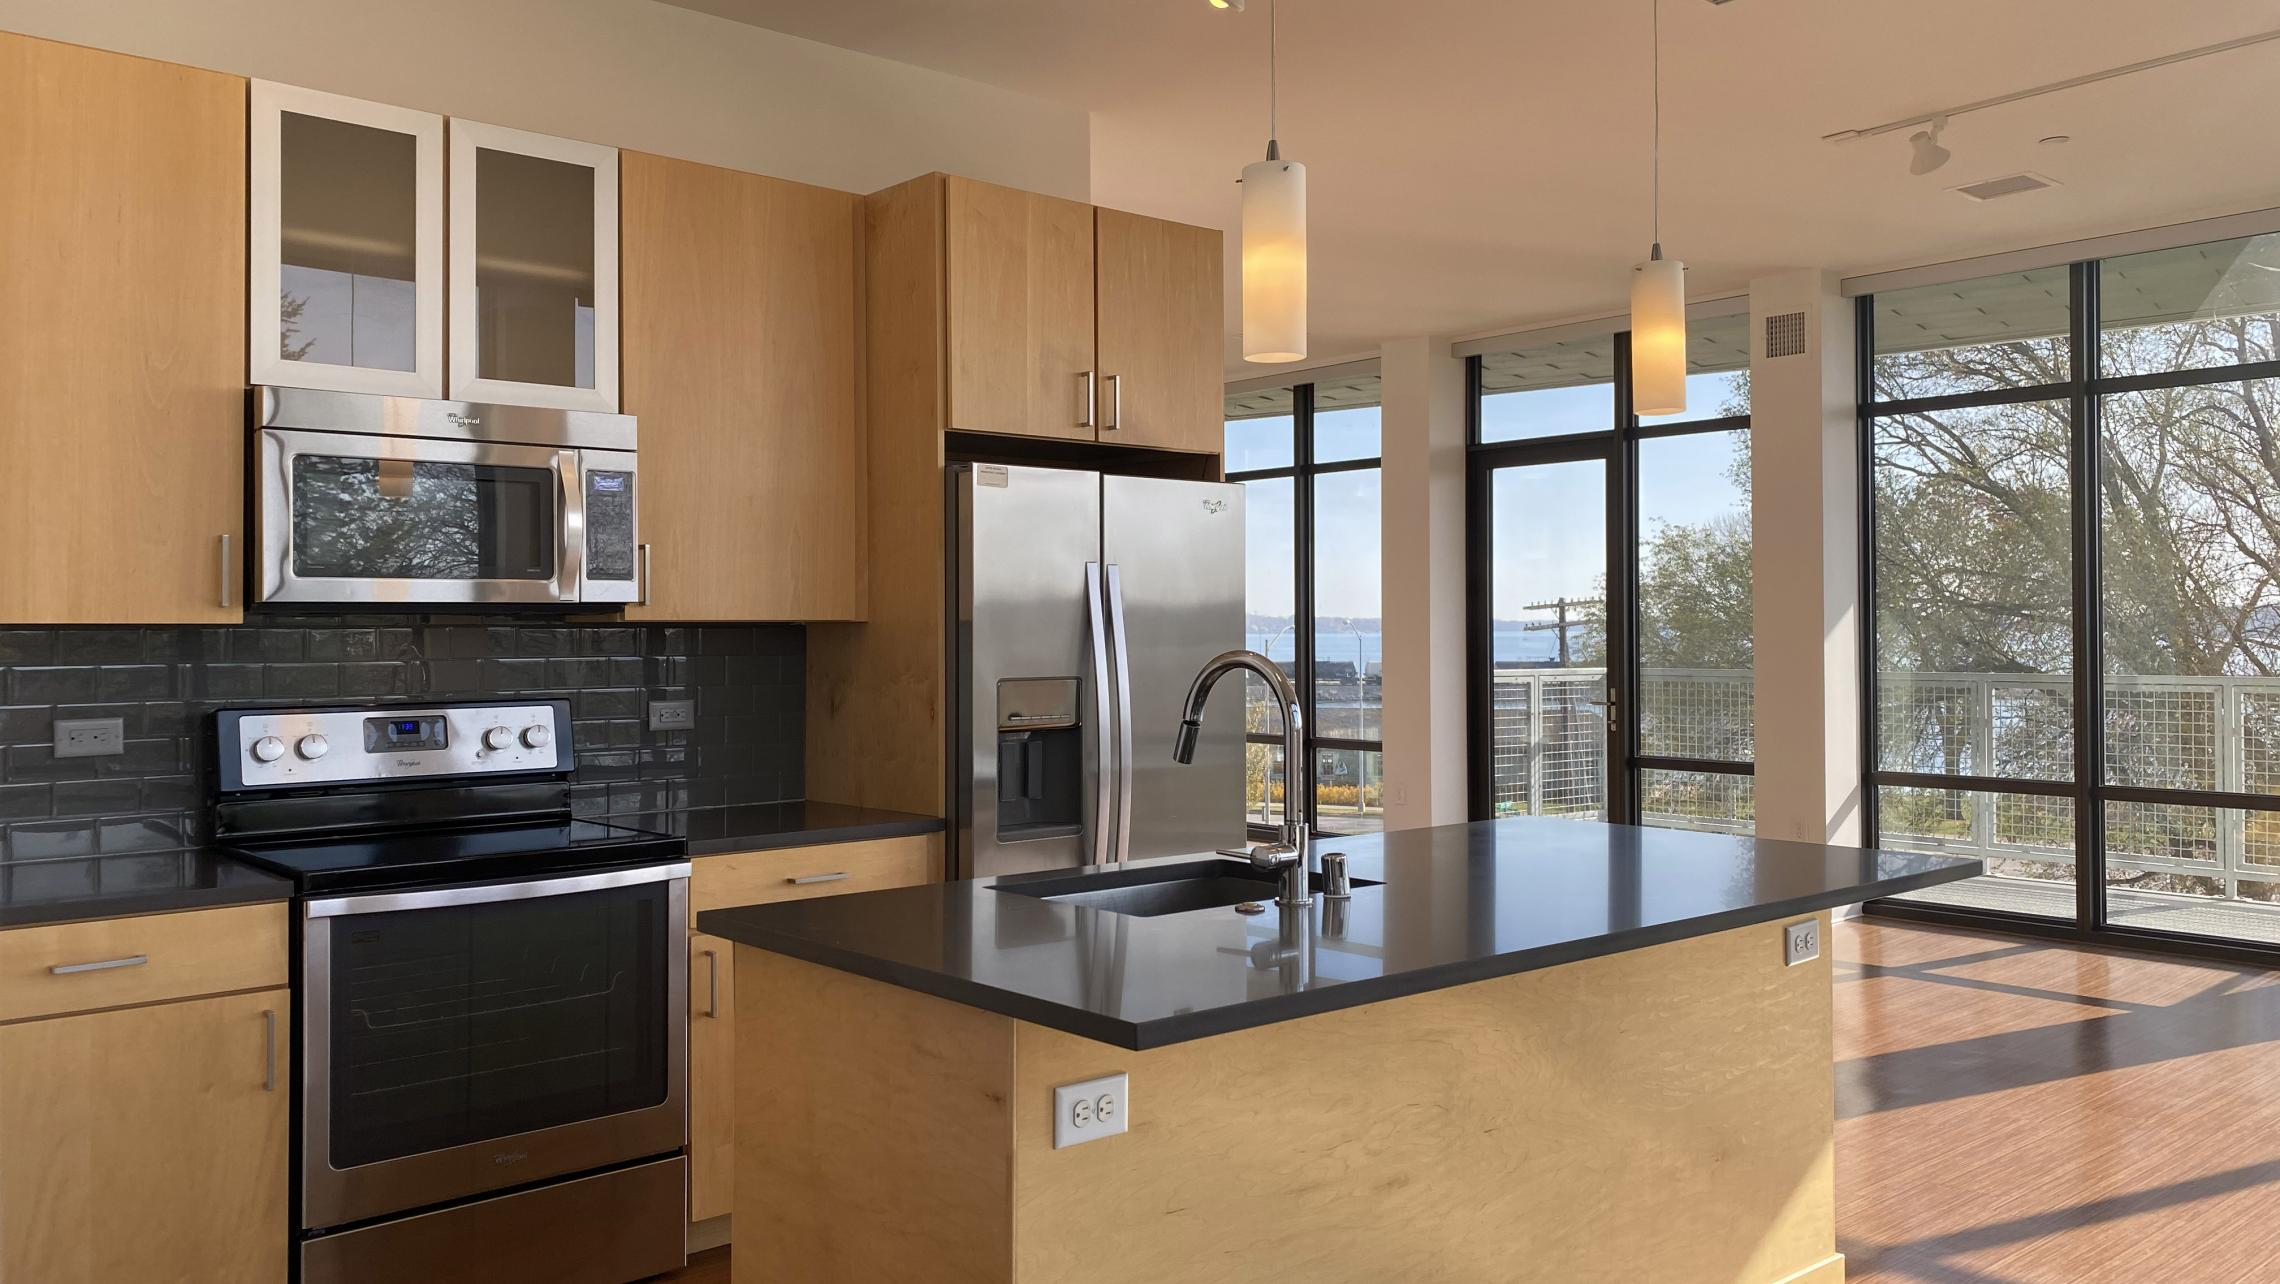 SEVEN27-The-Yards-Apartment-340-Two-Bedroom-Windows-Natural-Light-Stunning-Lake-View-Cats-Dogs-Balcony-Lounge-Modern-Upscale-Luxury-Kitchen-Bathroom-Design-Downtown-MadisonSEVEN27-The-Yards-Apartment-340-Two-Bedroom-Windows-Natural-Light-Stunning-Lake-Vie